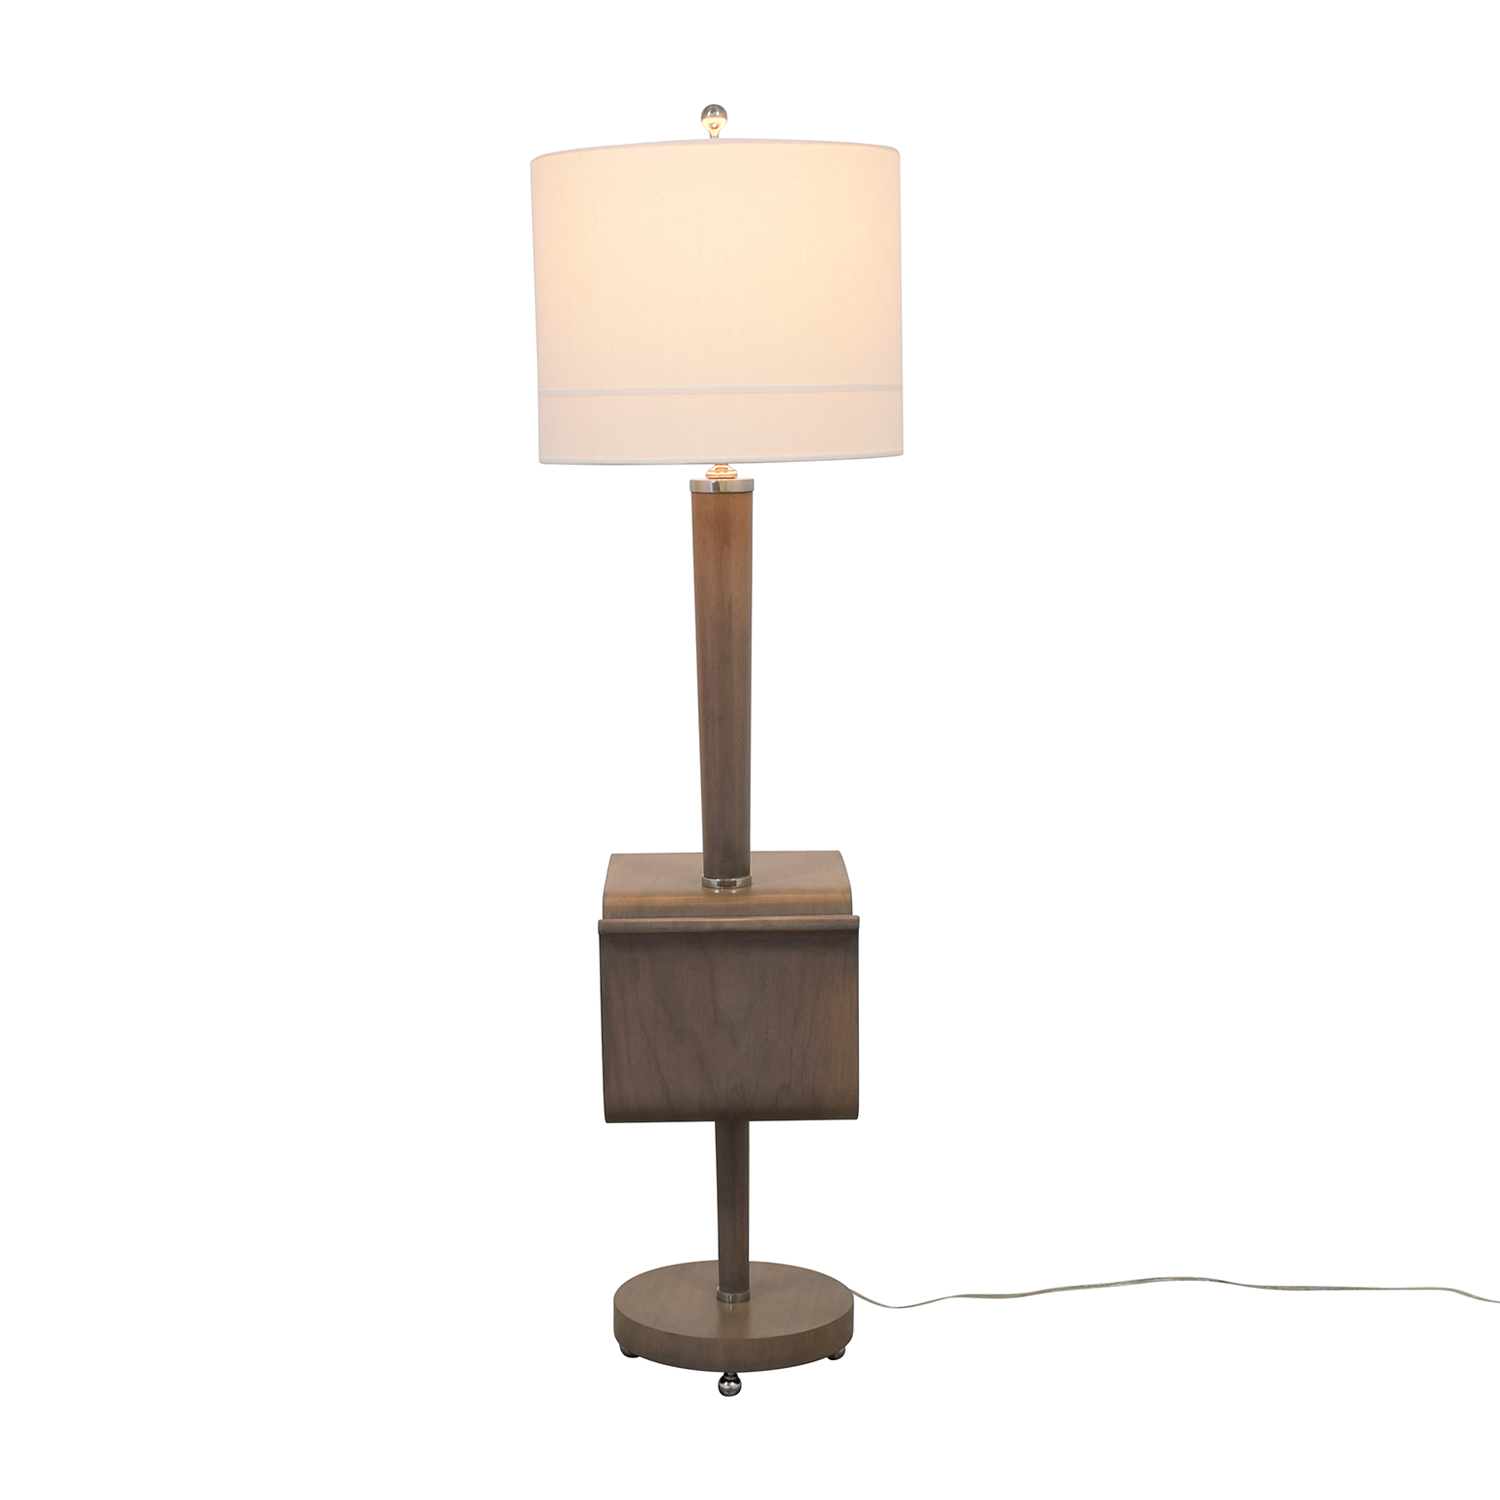 Stonebrook Interiors Floor Lamp with Magazine Holder / Lamps